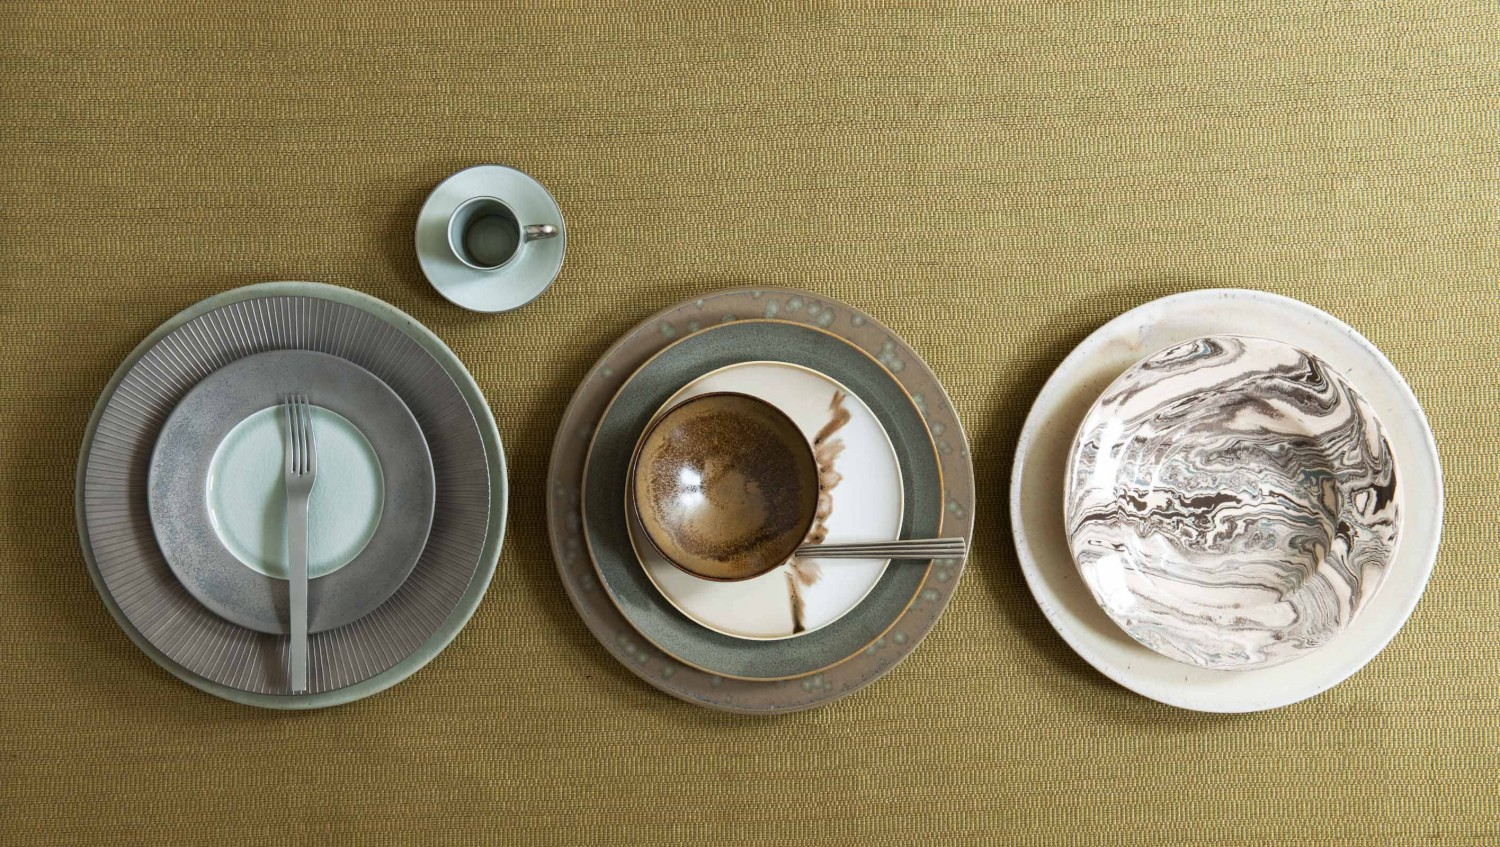 Willer Limoges porcelain, stoneware and faience; stainless steel and sterling silver cutlery.